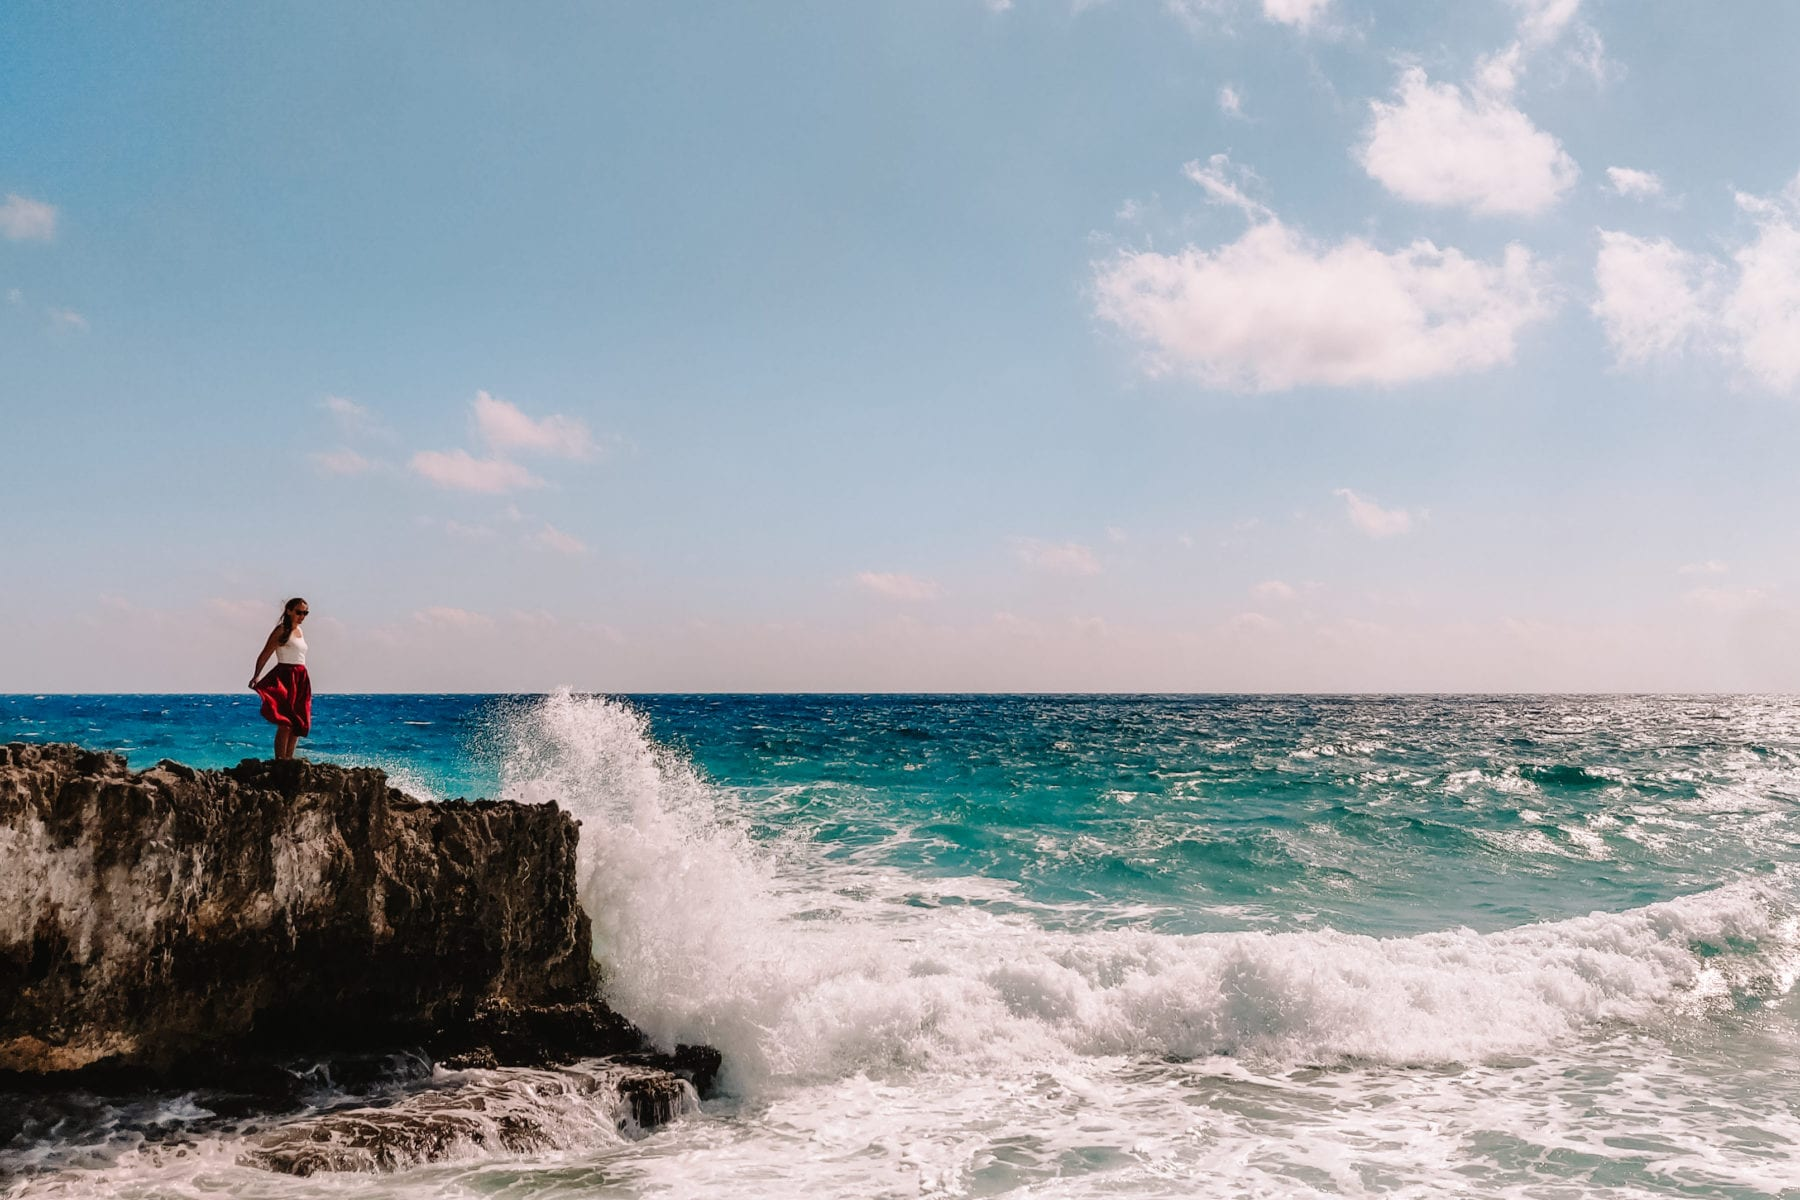 Day trip from Cancun - Cozumel